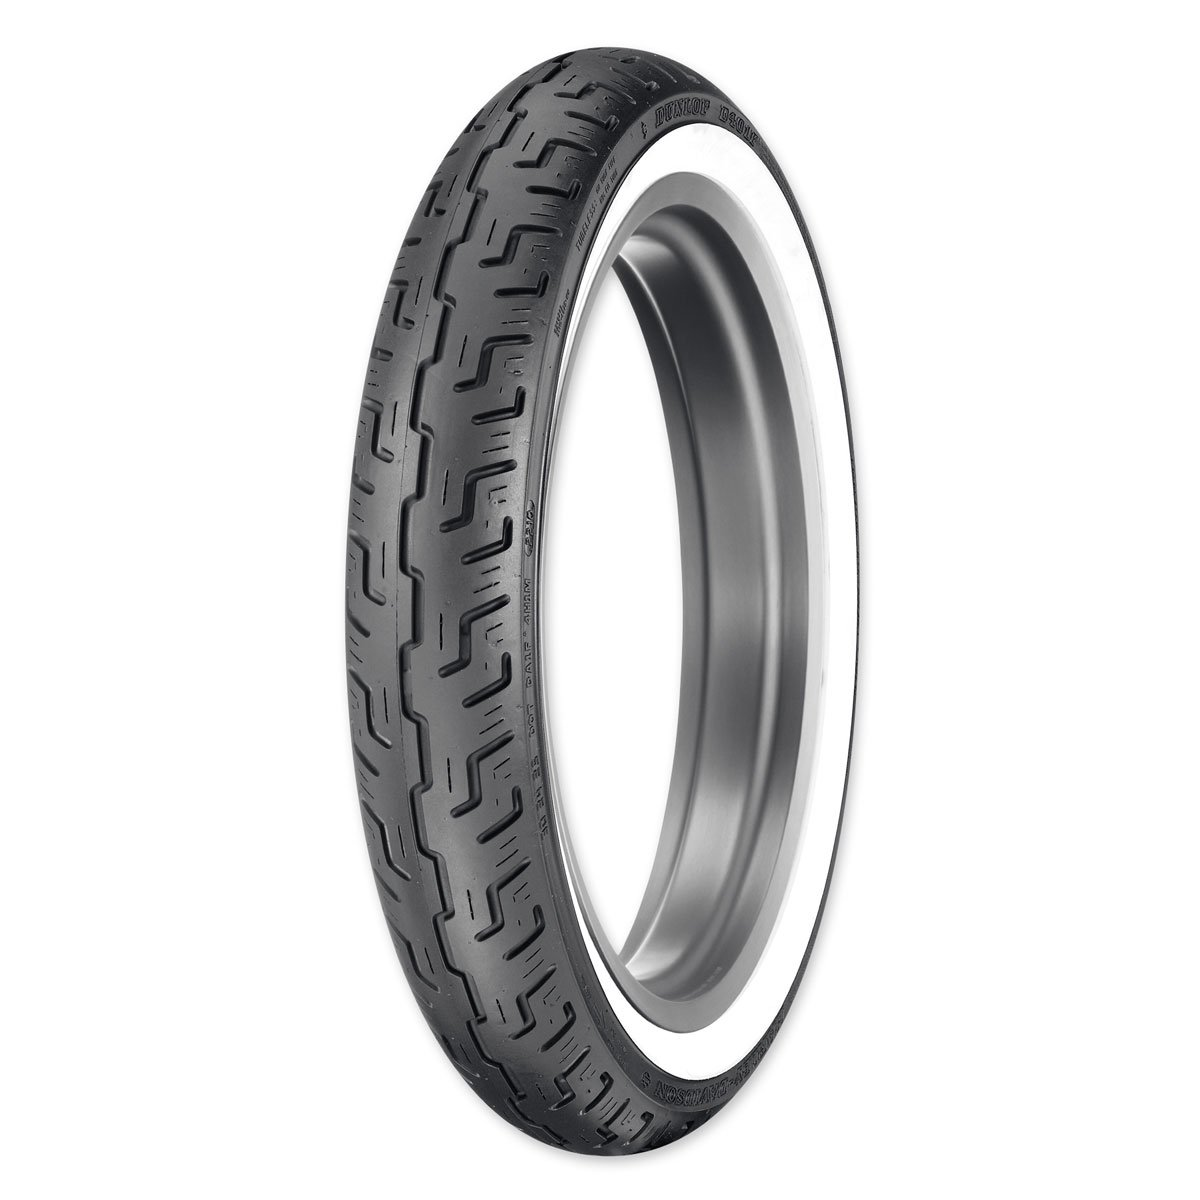 Dunlop D401 100/90-19 Wide Whitewall Front Tire 302425